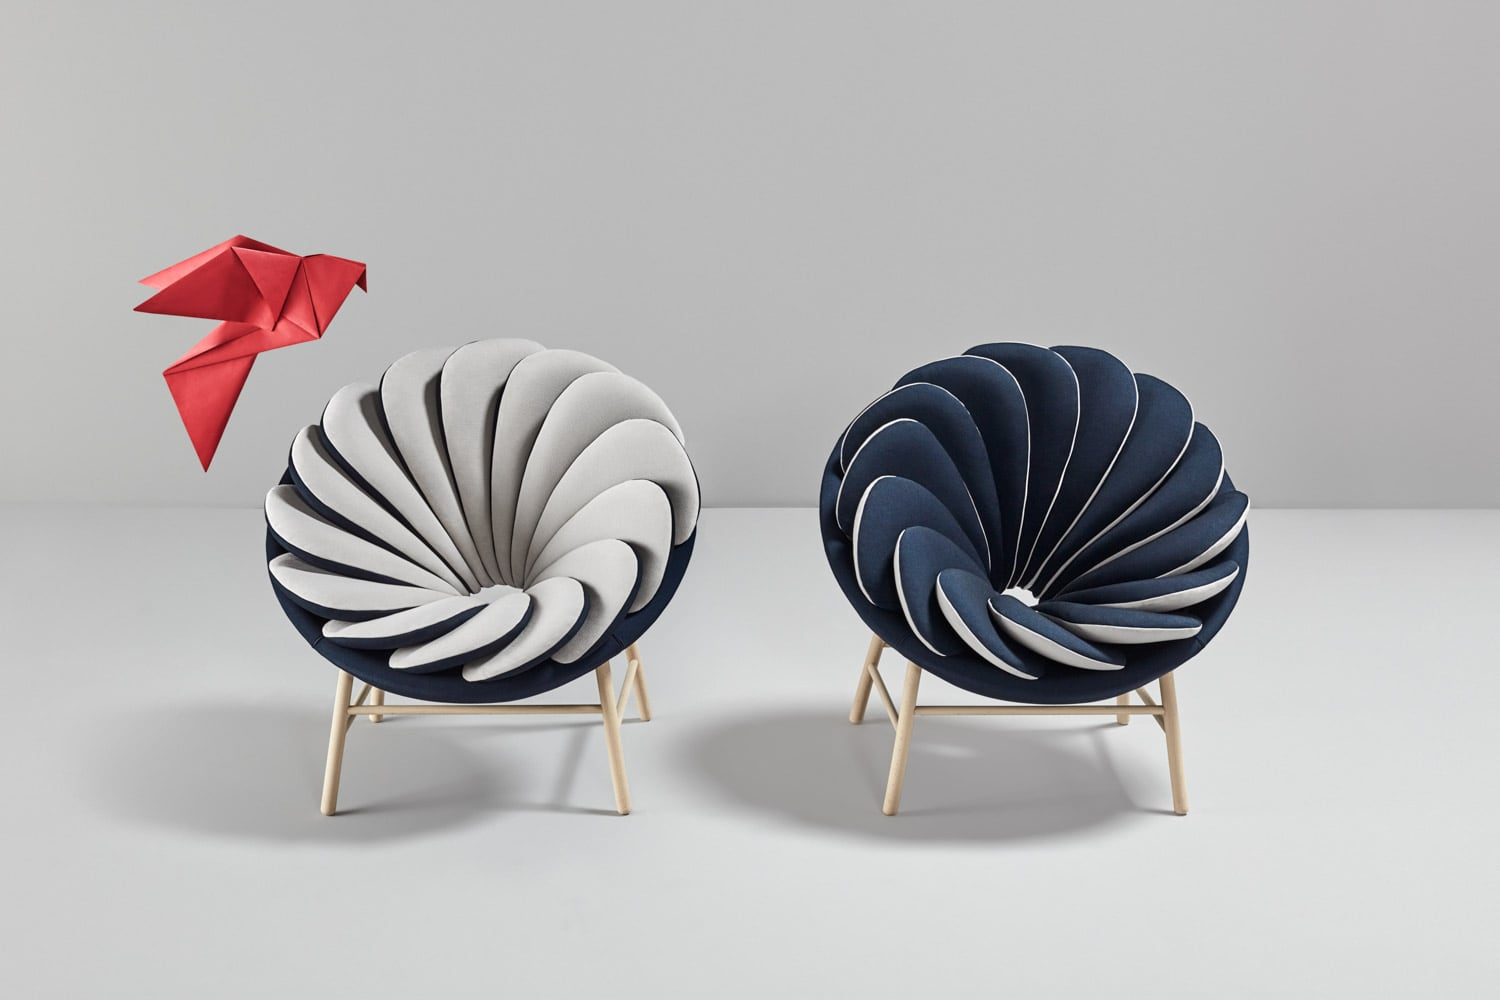 quetzal-armchair-design-innovative-contract-furniture-hospitality